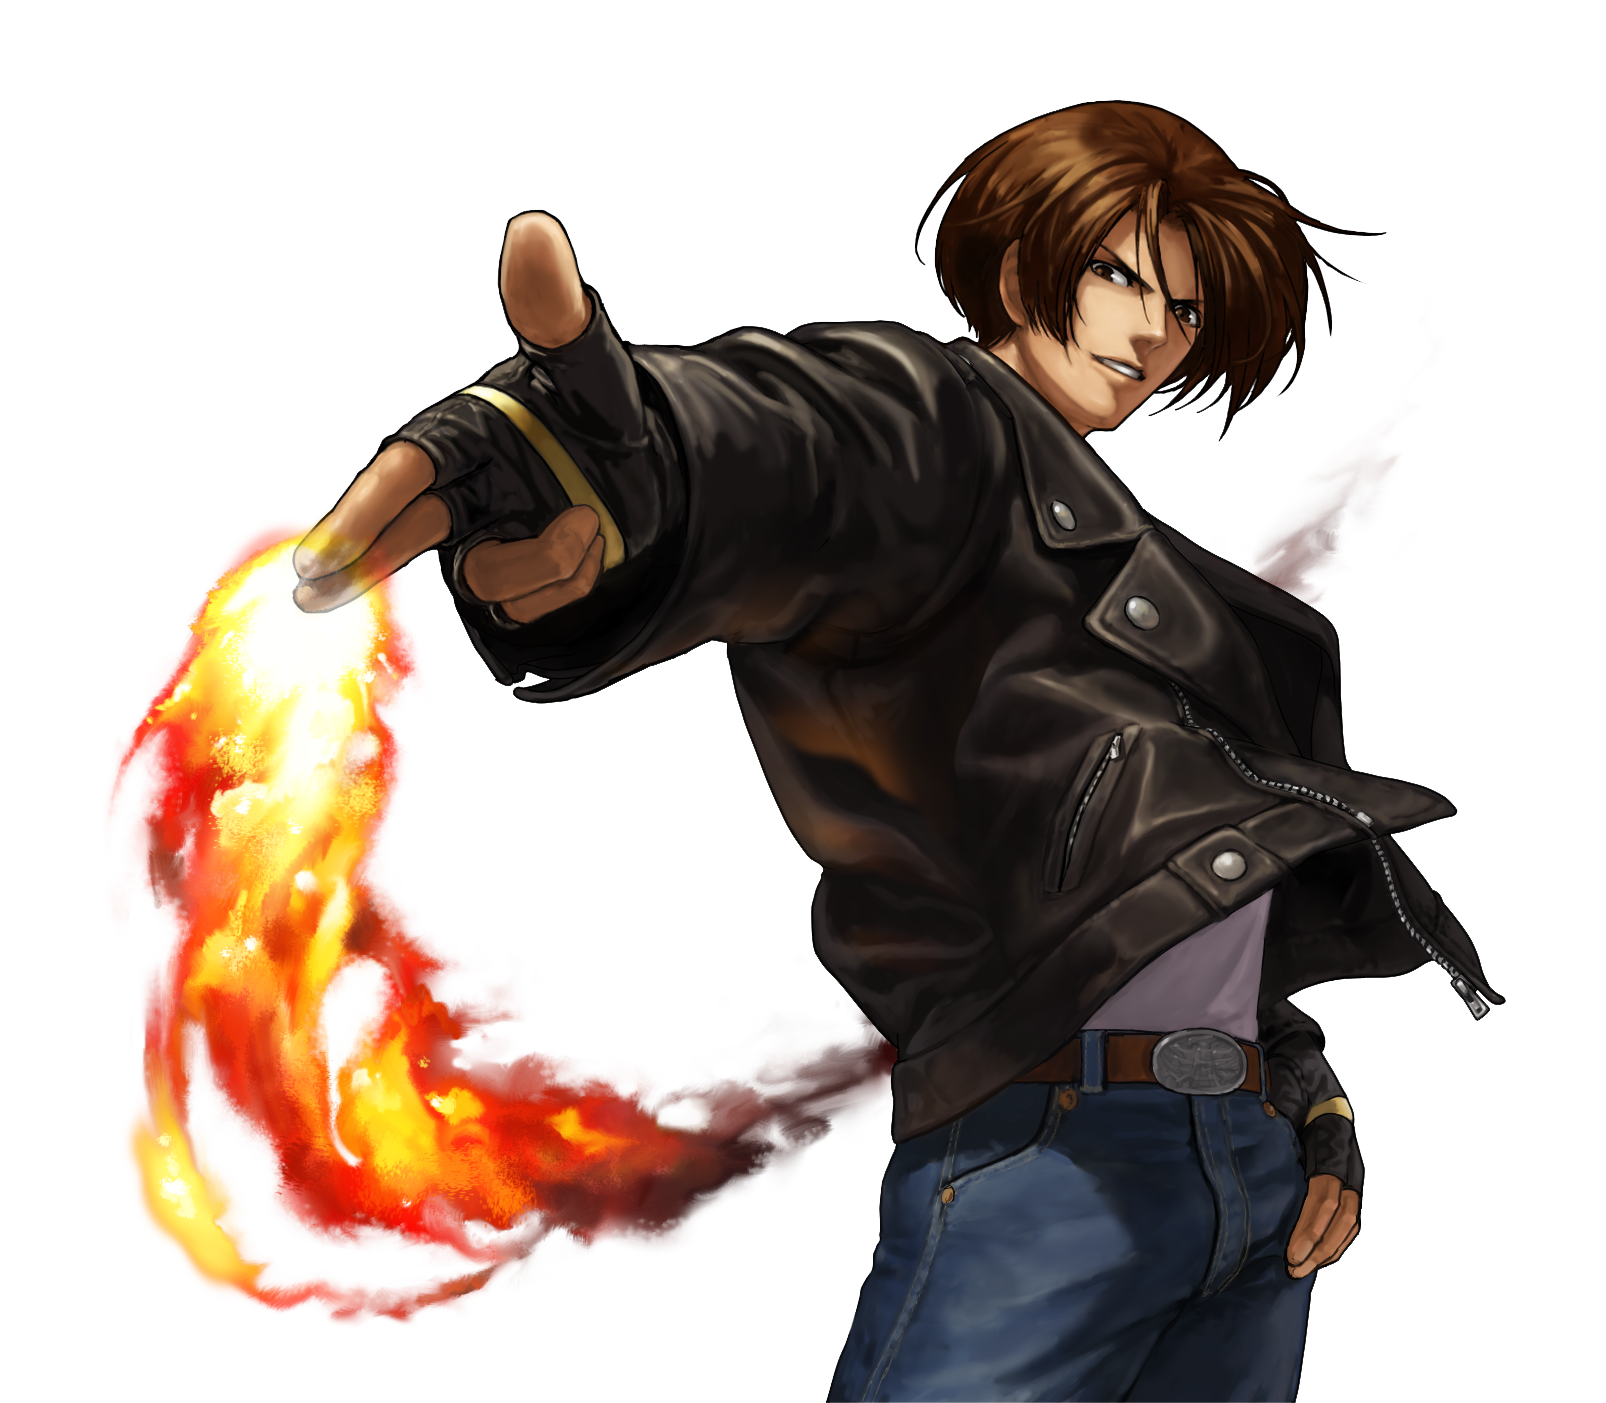 File Kyo-kofxiii-win pngKing Of Fighters Characters Kyo